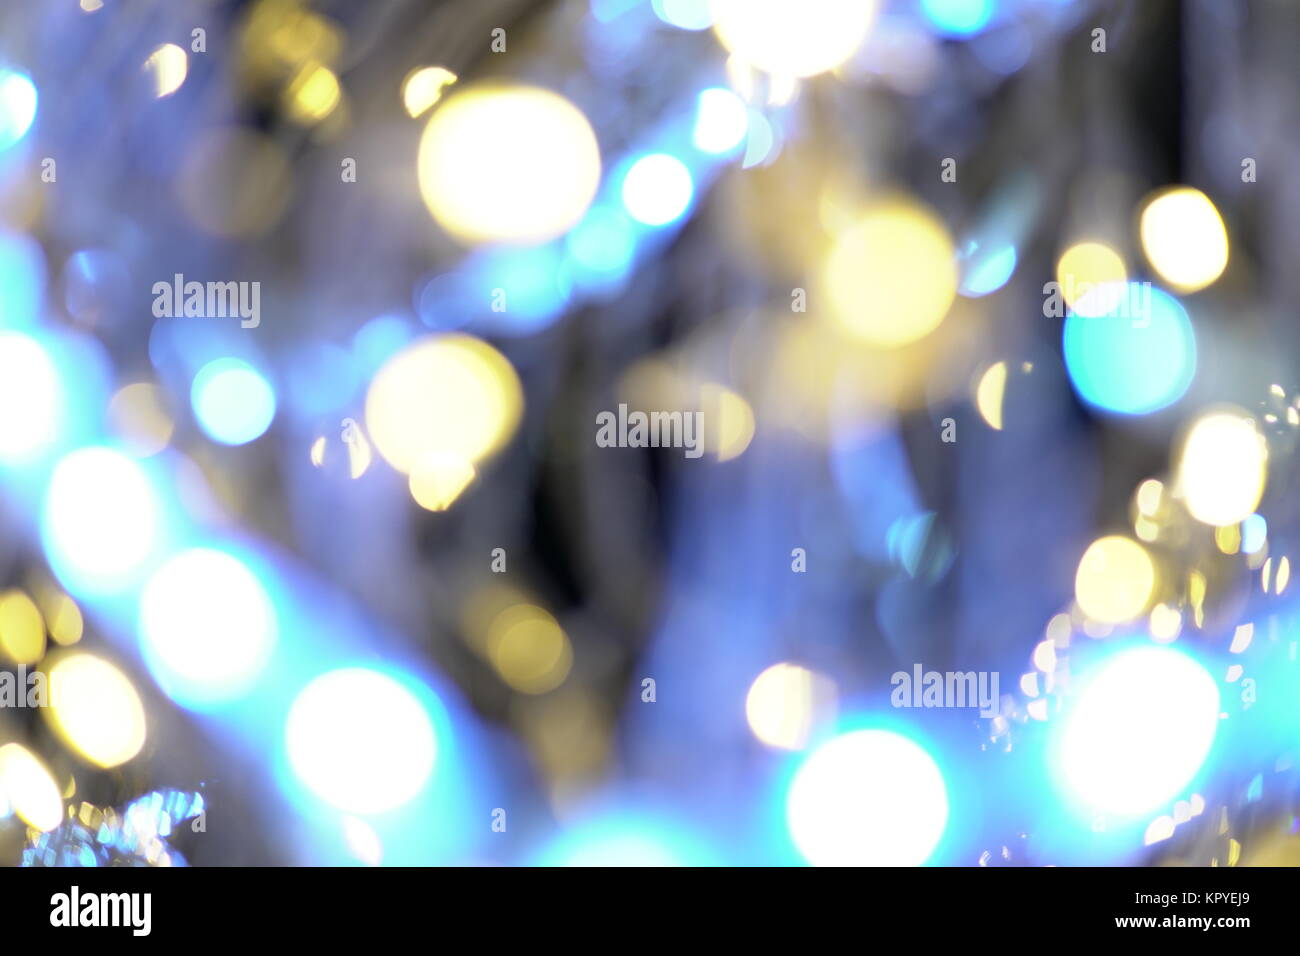 Garland lights Bokeh texture background different colors Stock Photo